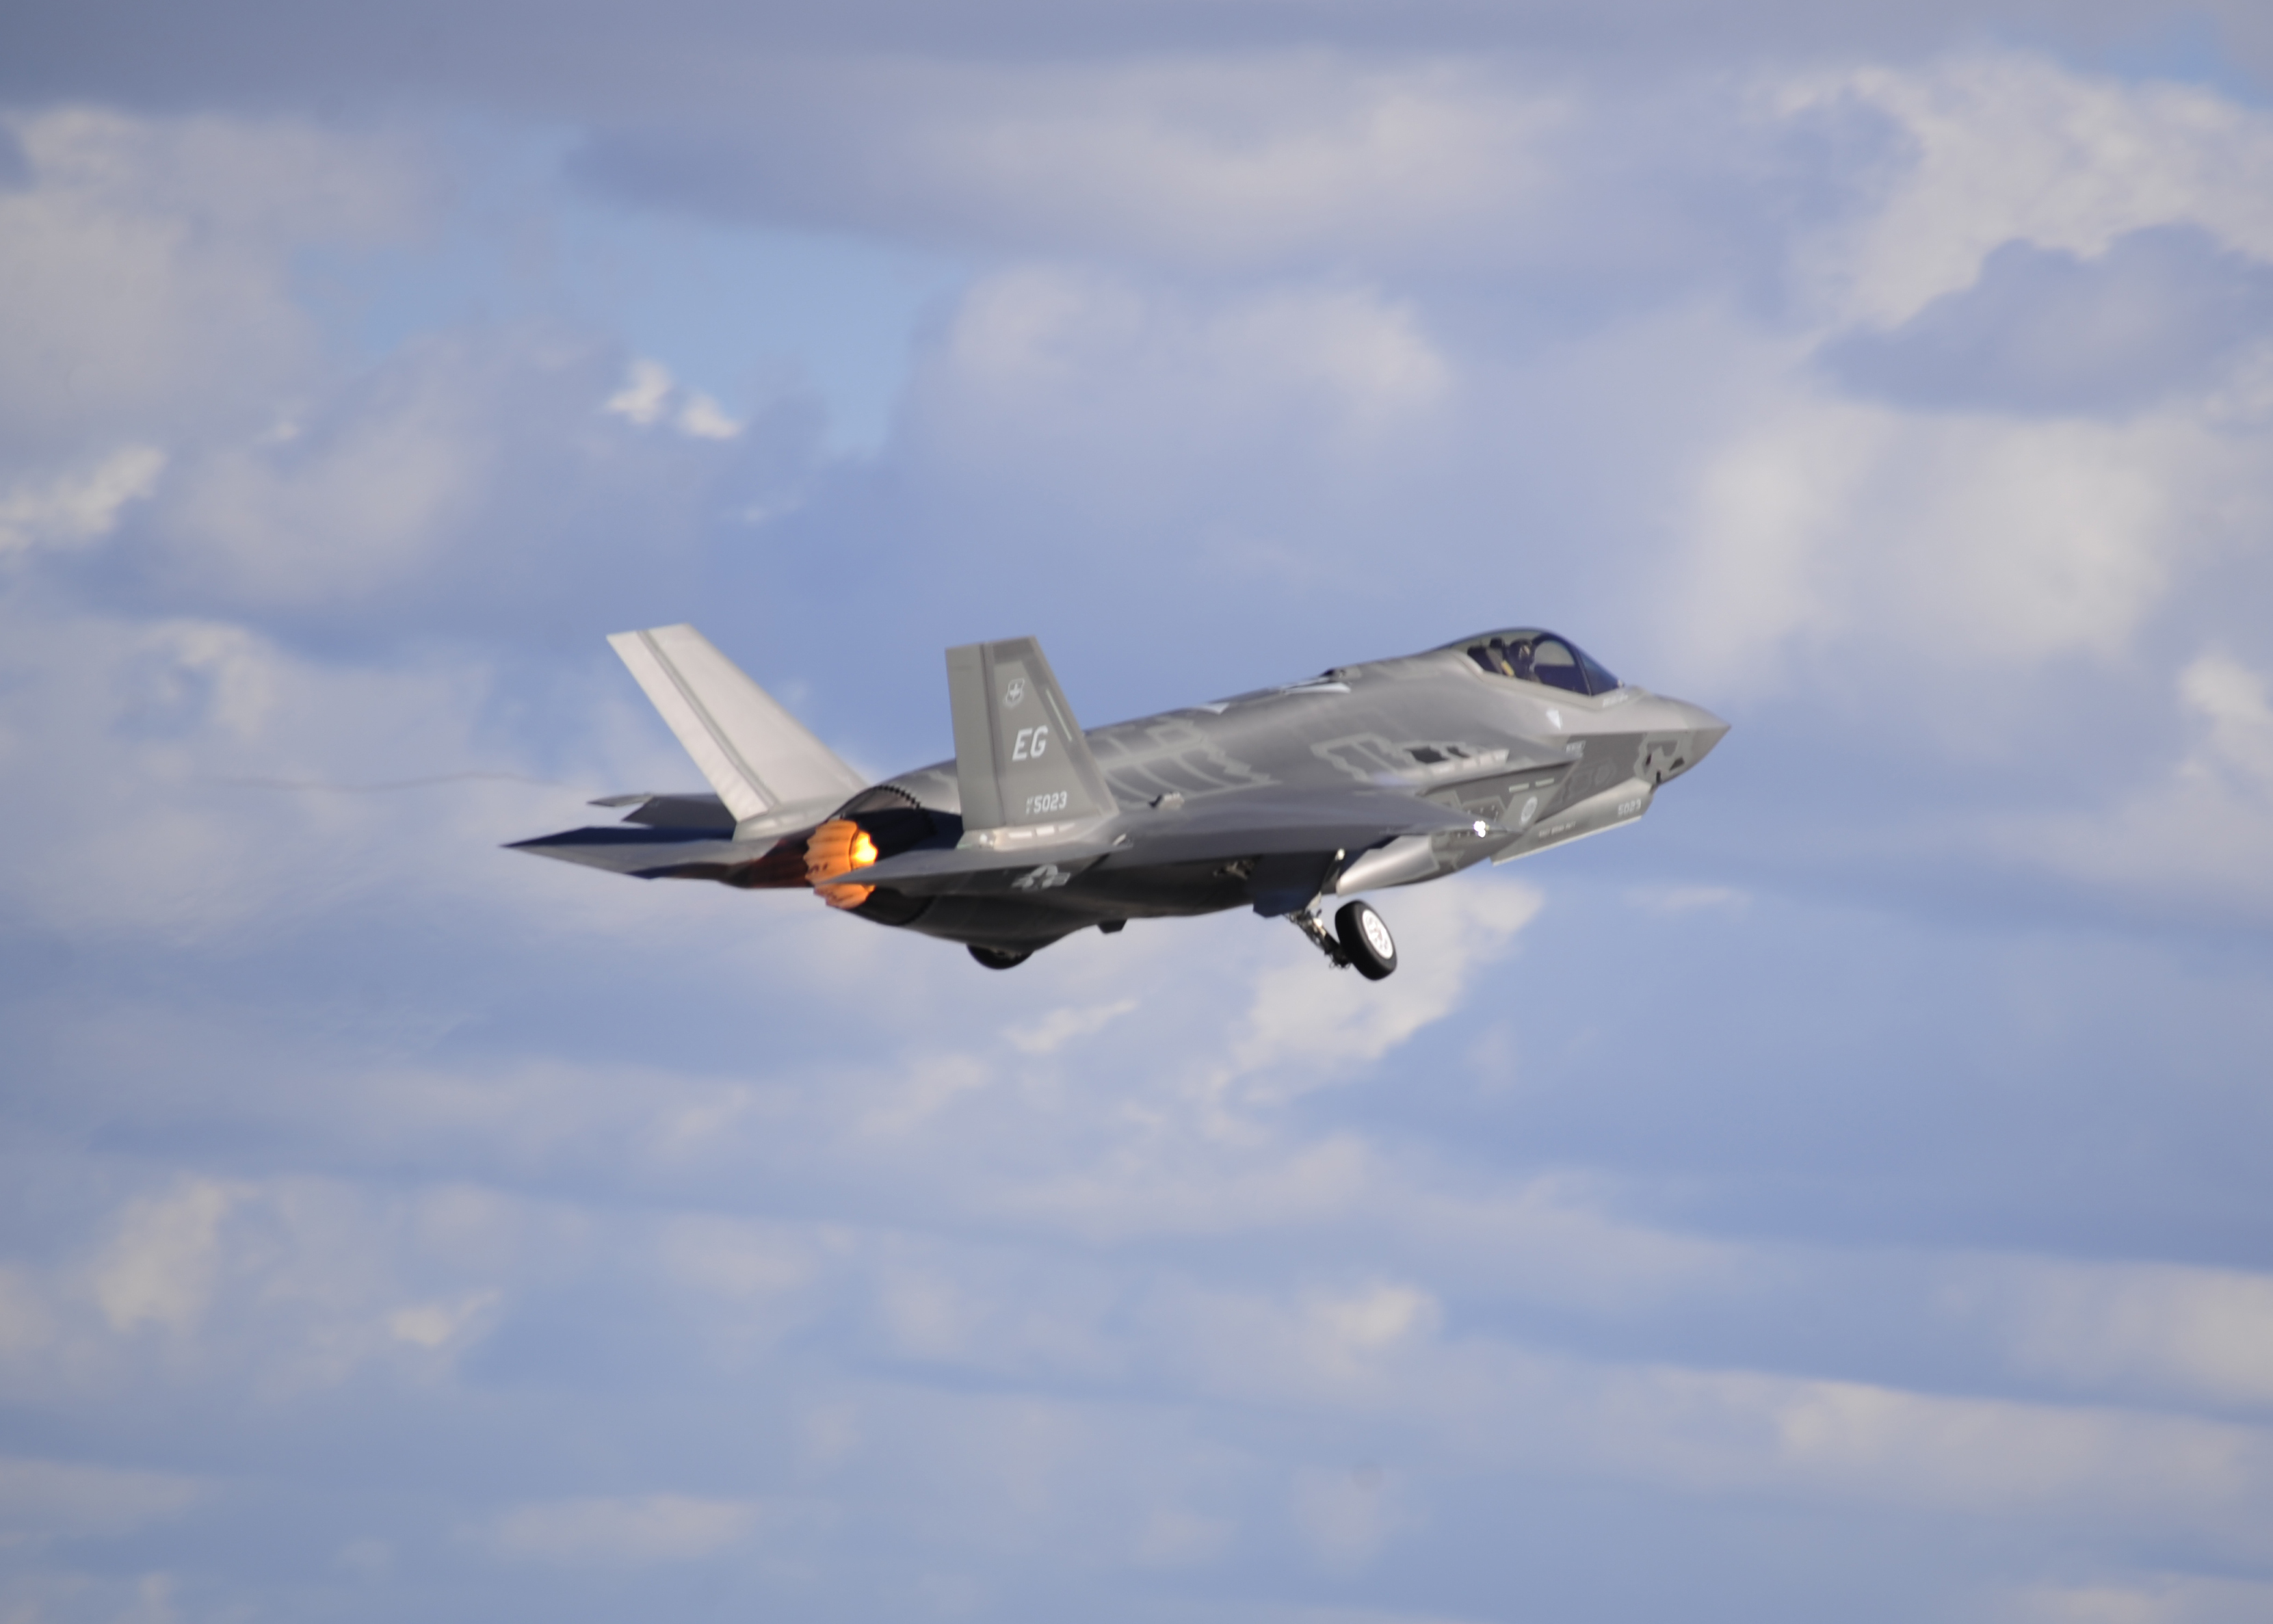 An F-35 Lightning II pilot from Eglin Air Force Base, Fla., takes off Dec. 11 from Tyndall Air Force Base, Fla., during the Checkered Flag exercise. The Checkered Flag exercise gave Tyndall and Eglin personnel the opportunity to see how F-35 and F-22 Raptor aircraft augment the ability combat airpower. (U.S. Air Force photo by Senior Airman Solomon Cook)